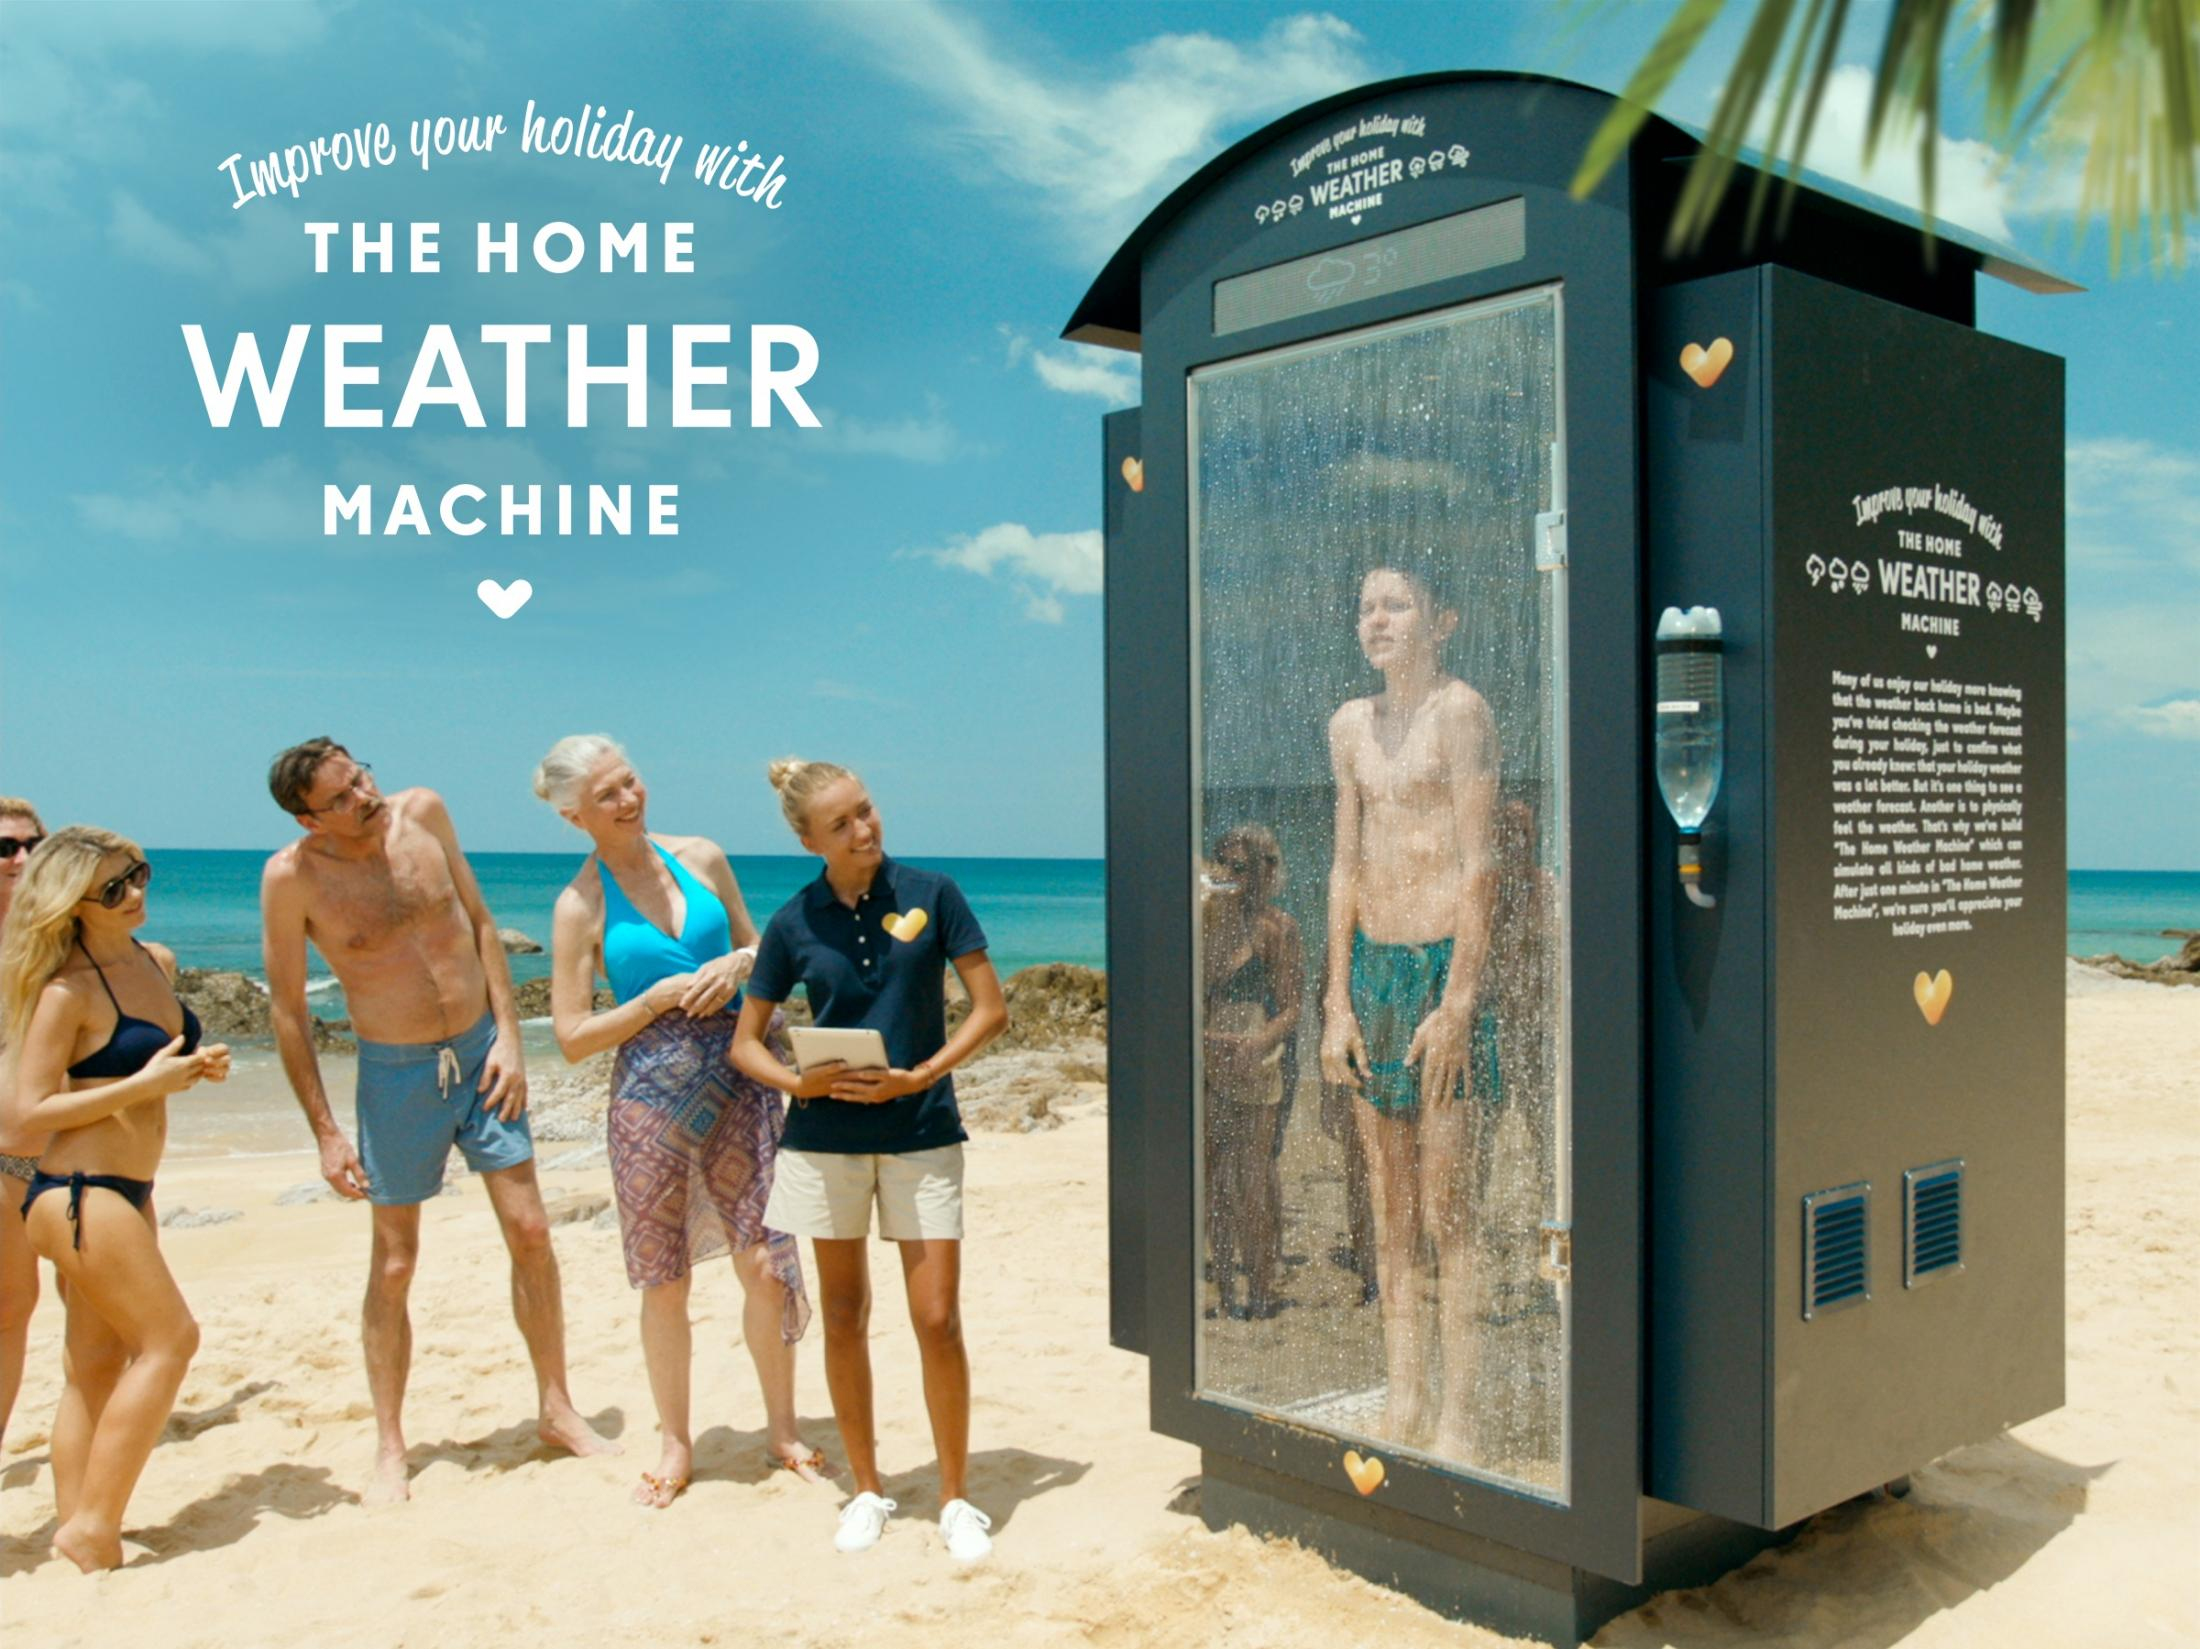 SPIES Travels Experiential Ad - The Home Weather Machine